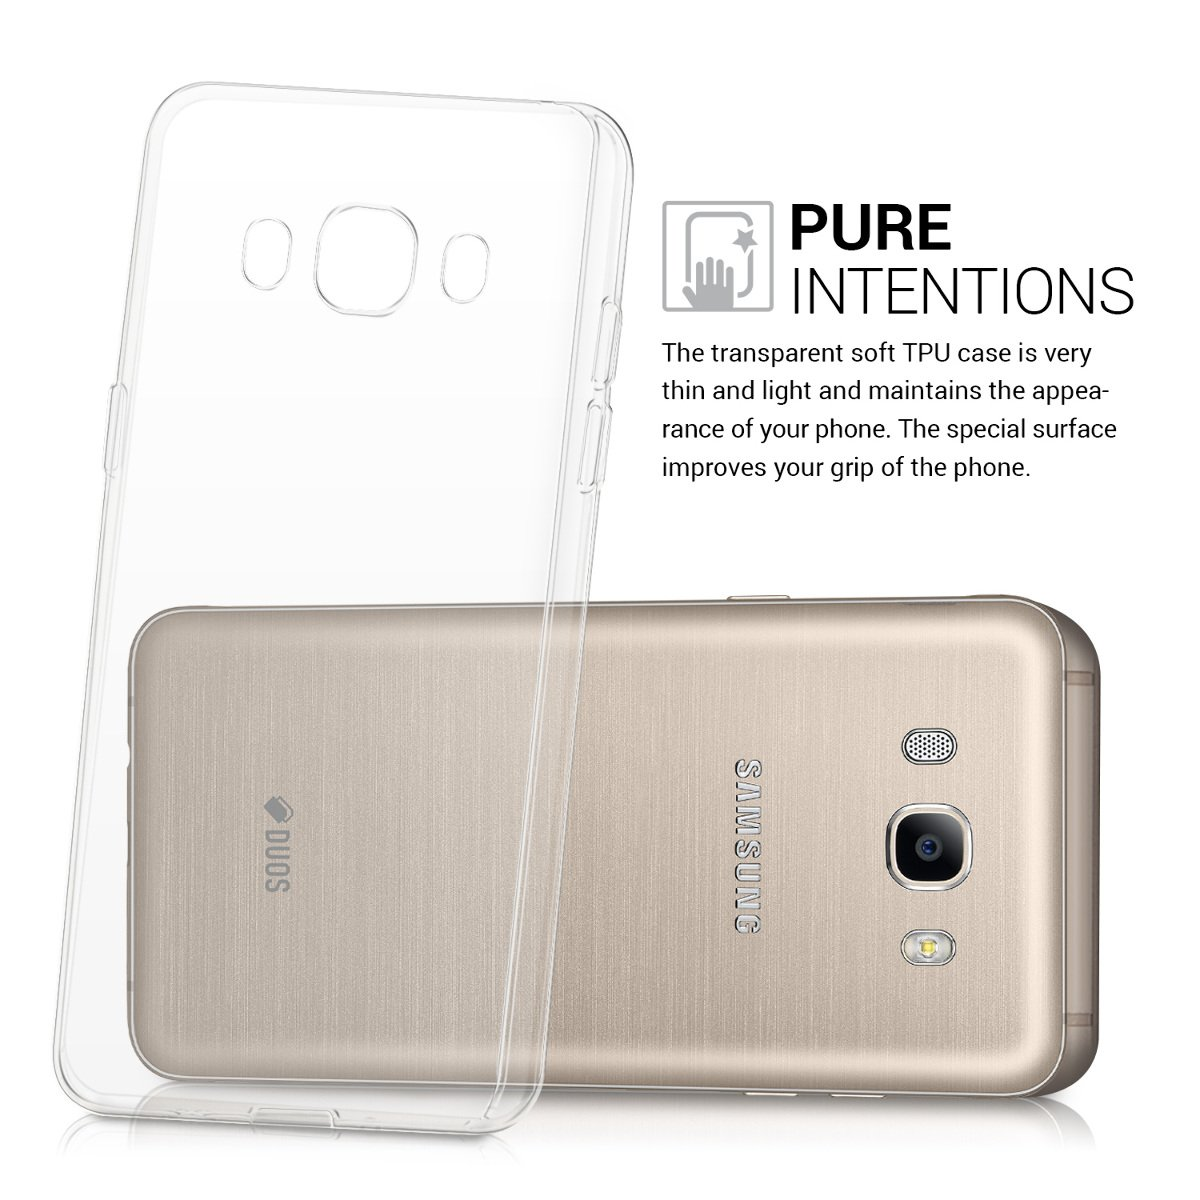 Kwmobile Crystal Case For Samsung Galaxy J5 2016 Duos Mercury Jelly Prime Clear Soft Flexible Tpu Silicone Protective Cover Transparent Cell Phones Accessories